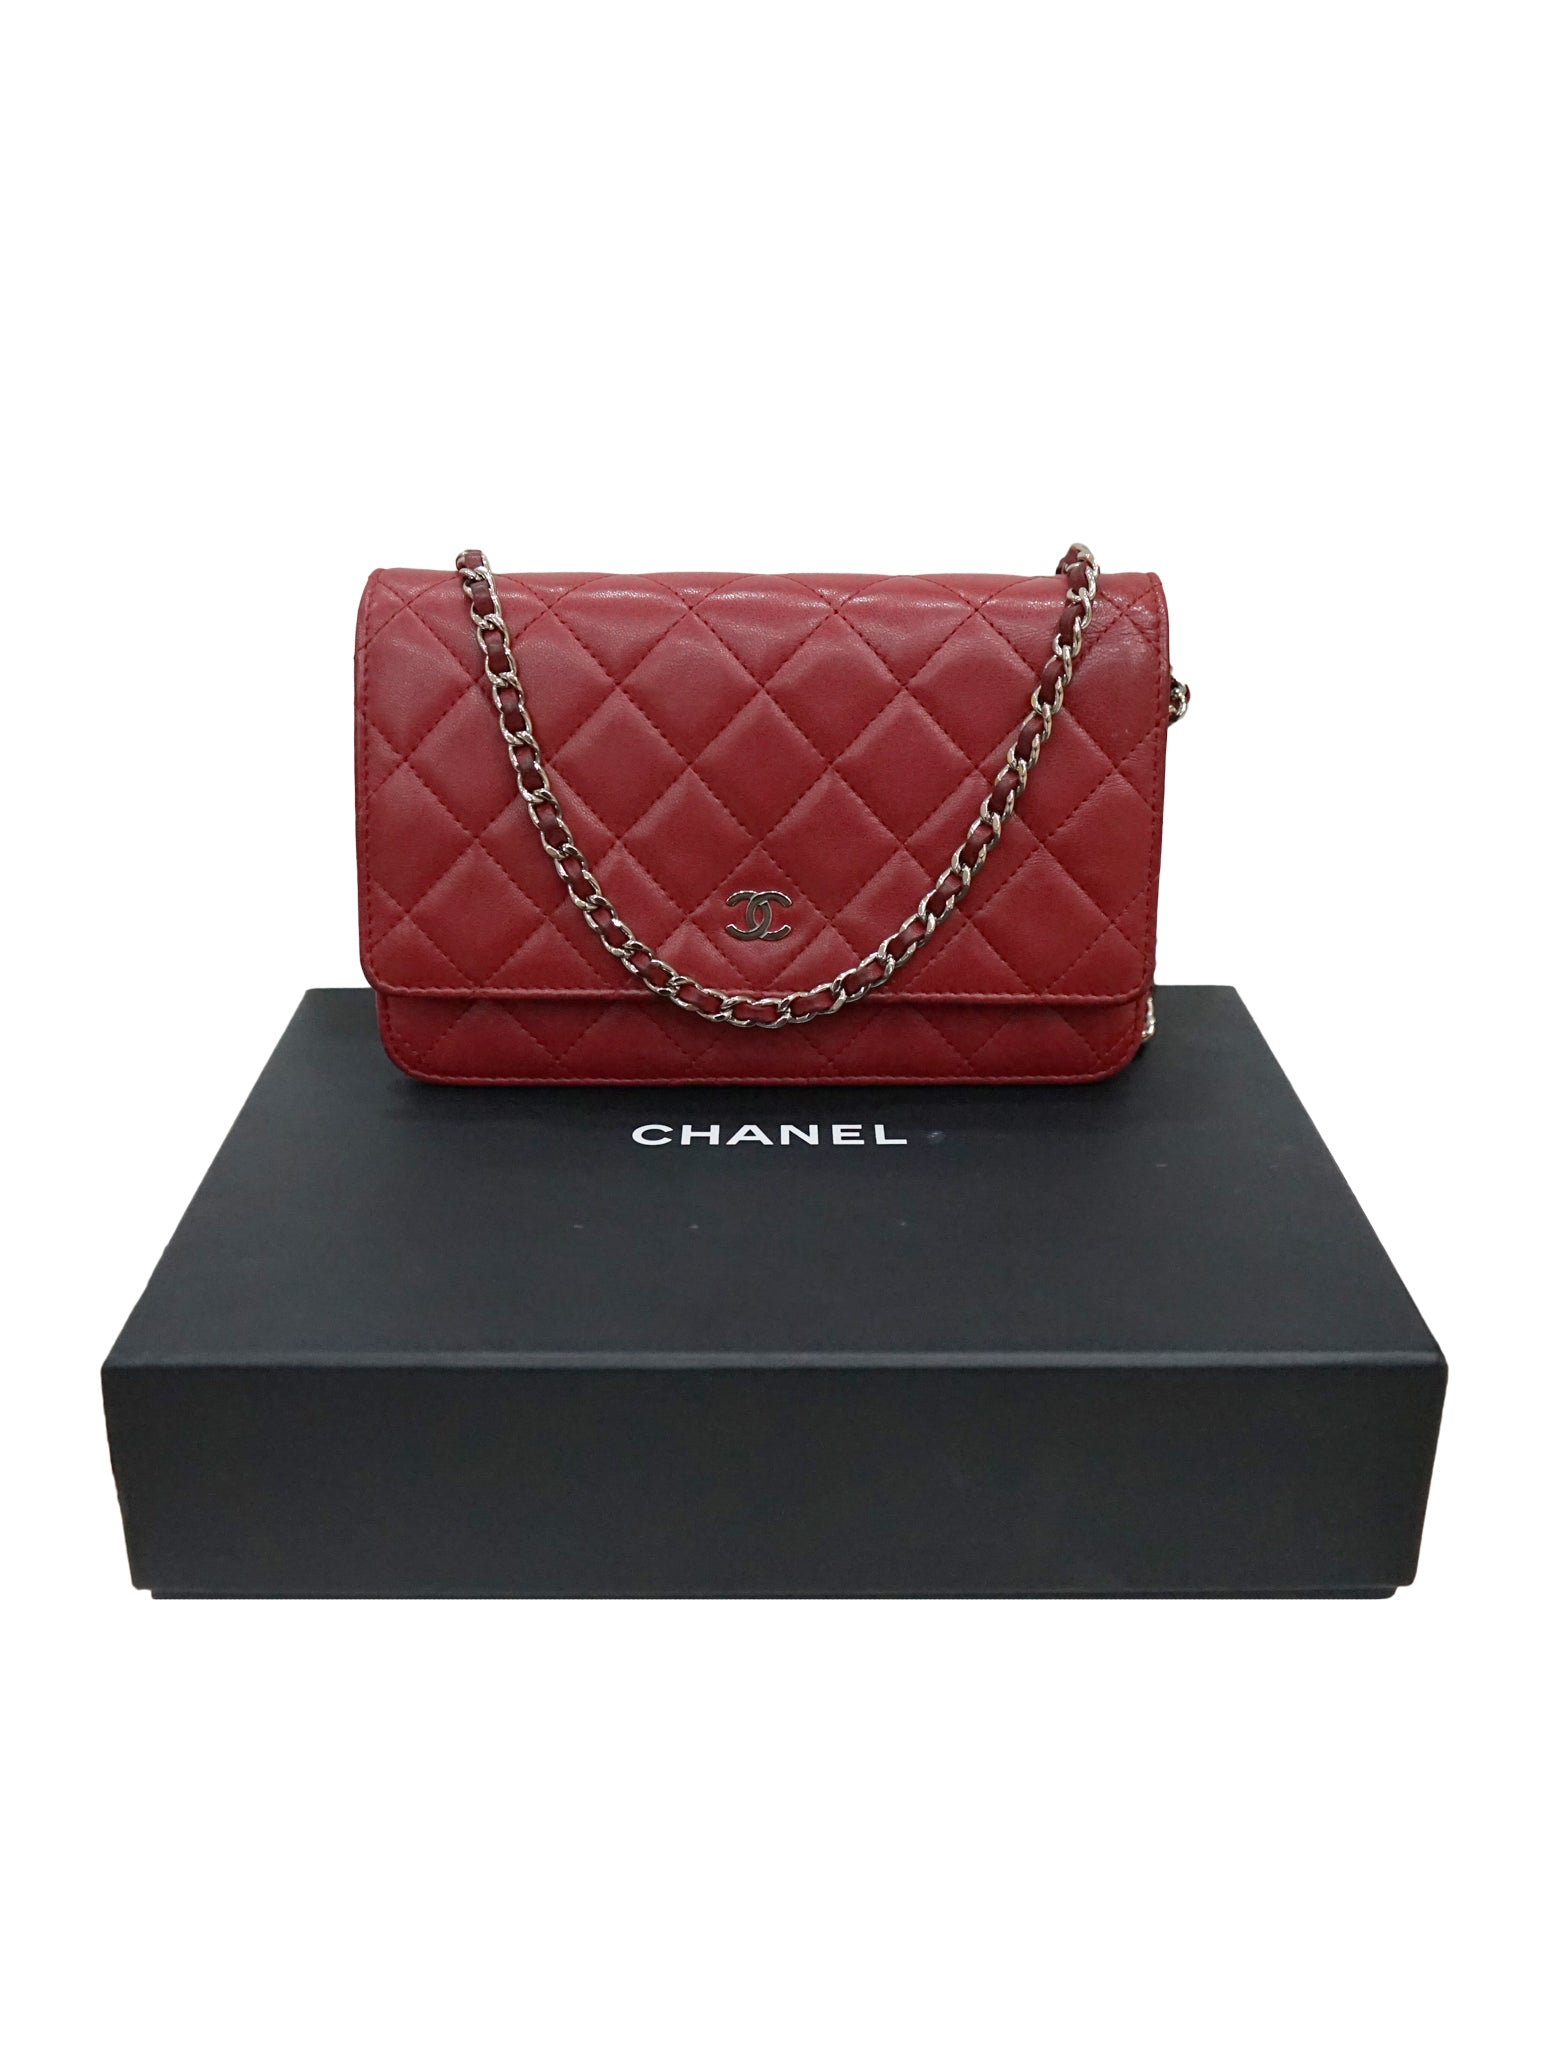 RED QUILTED LEATHER WOC CLUTCH BAG